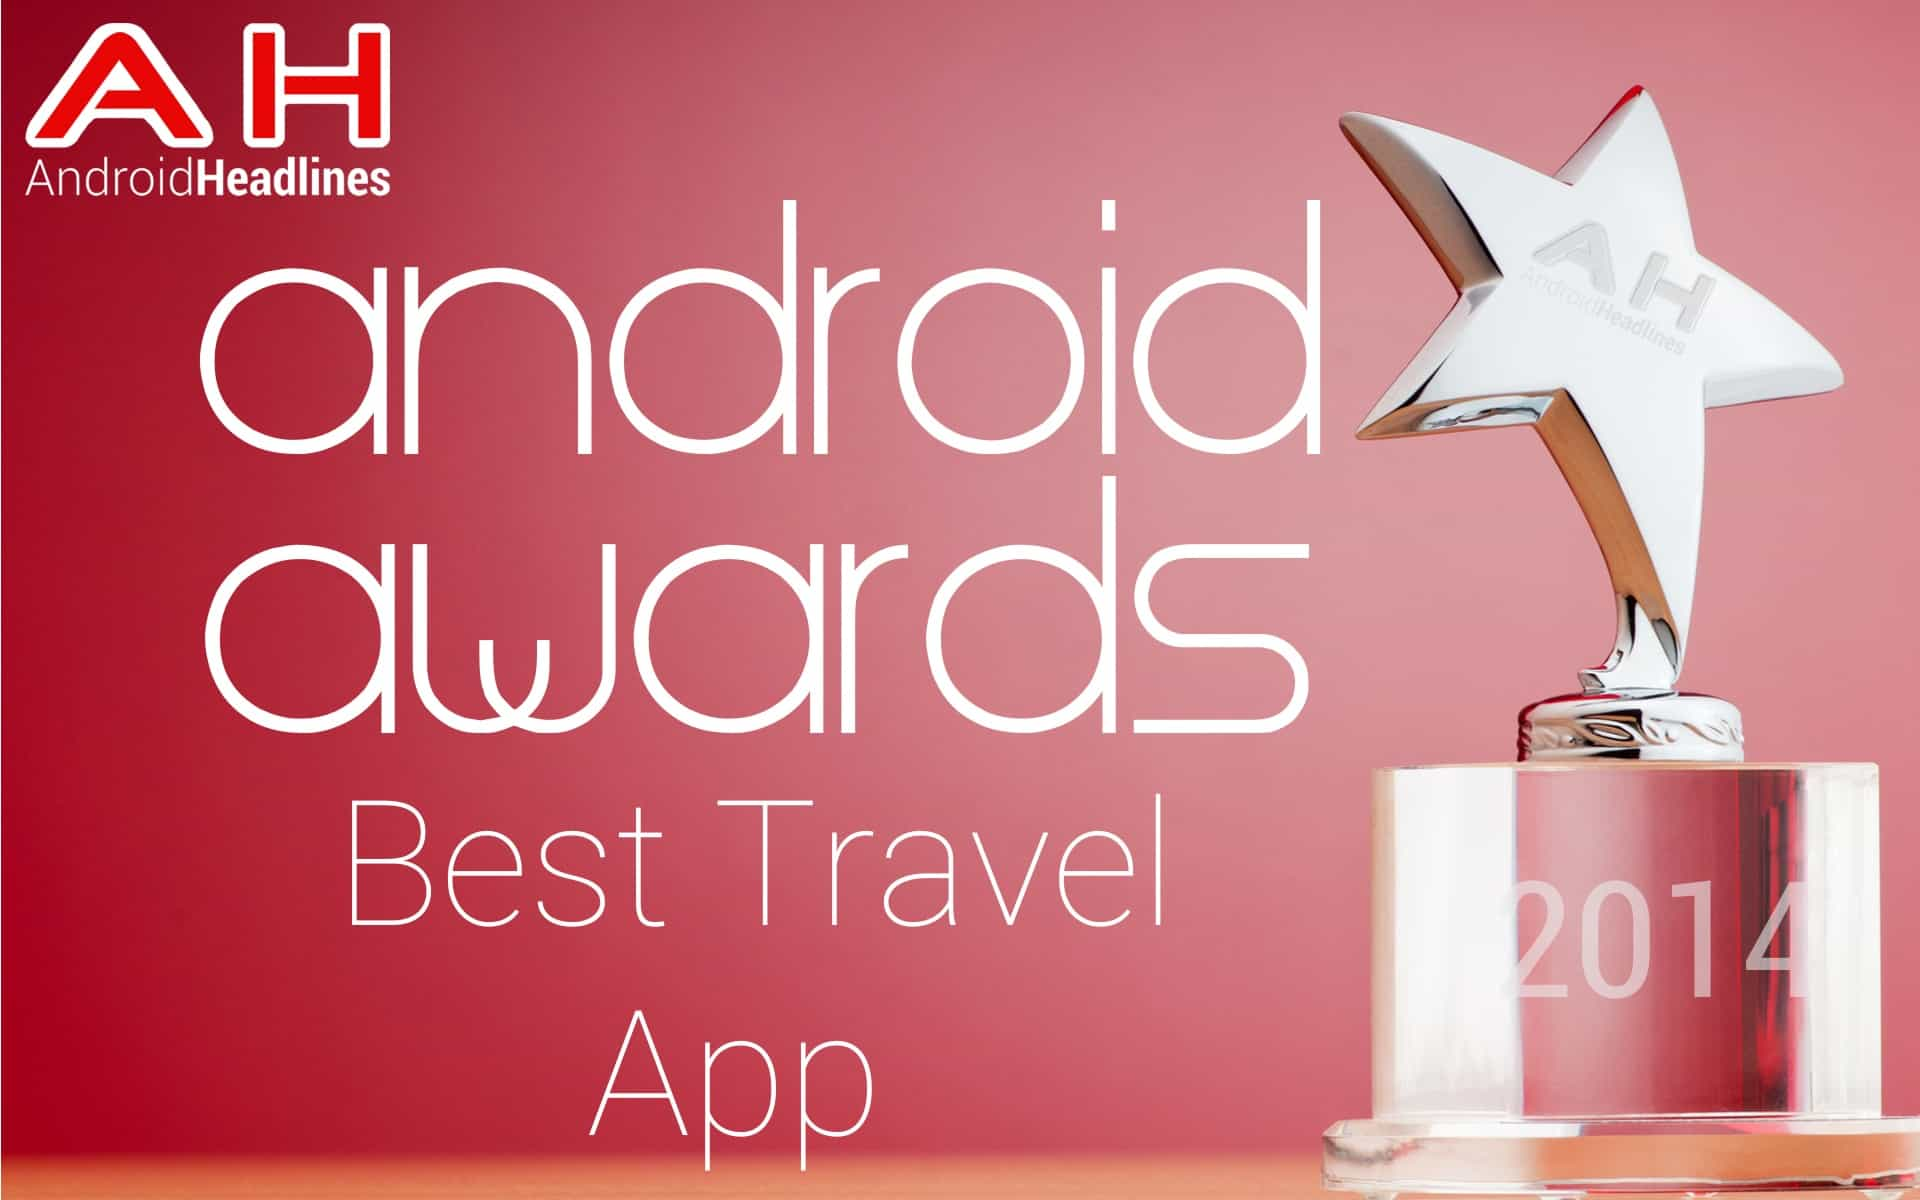 AH Awards 2015 Best Android Travel App